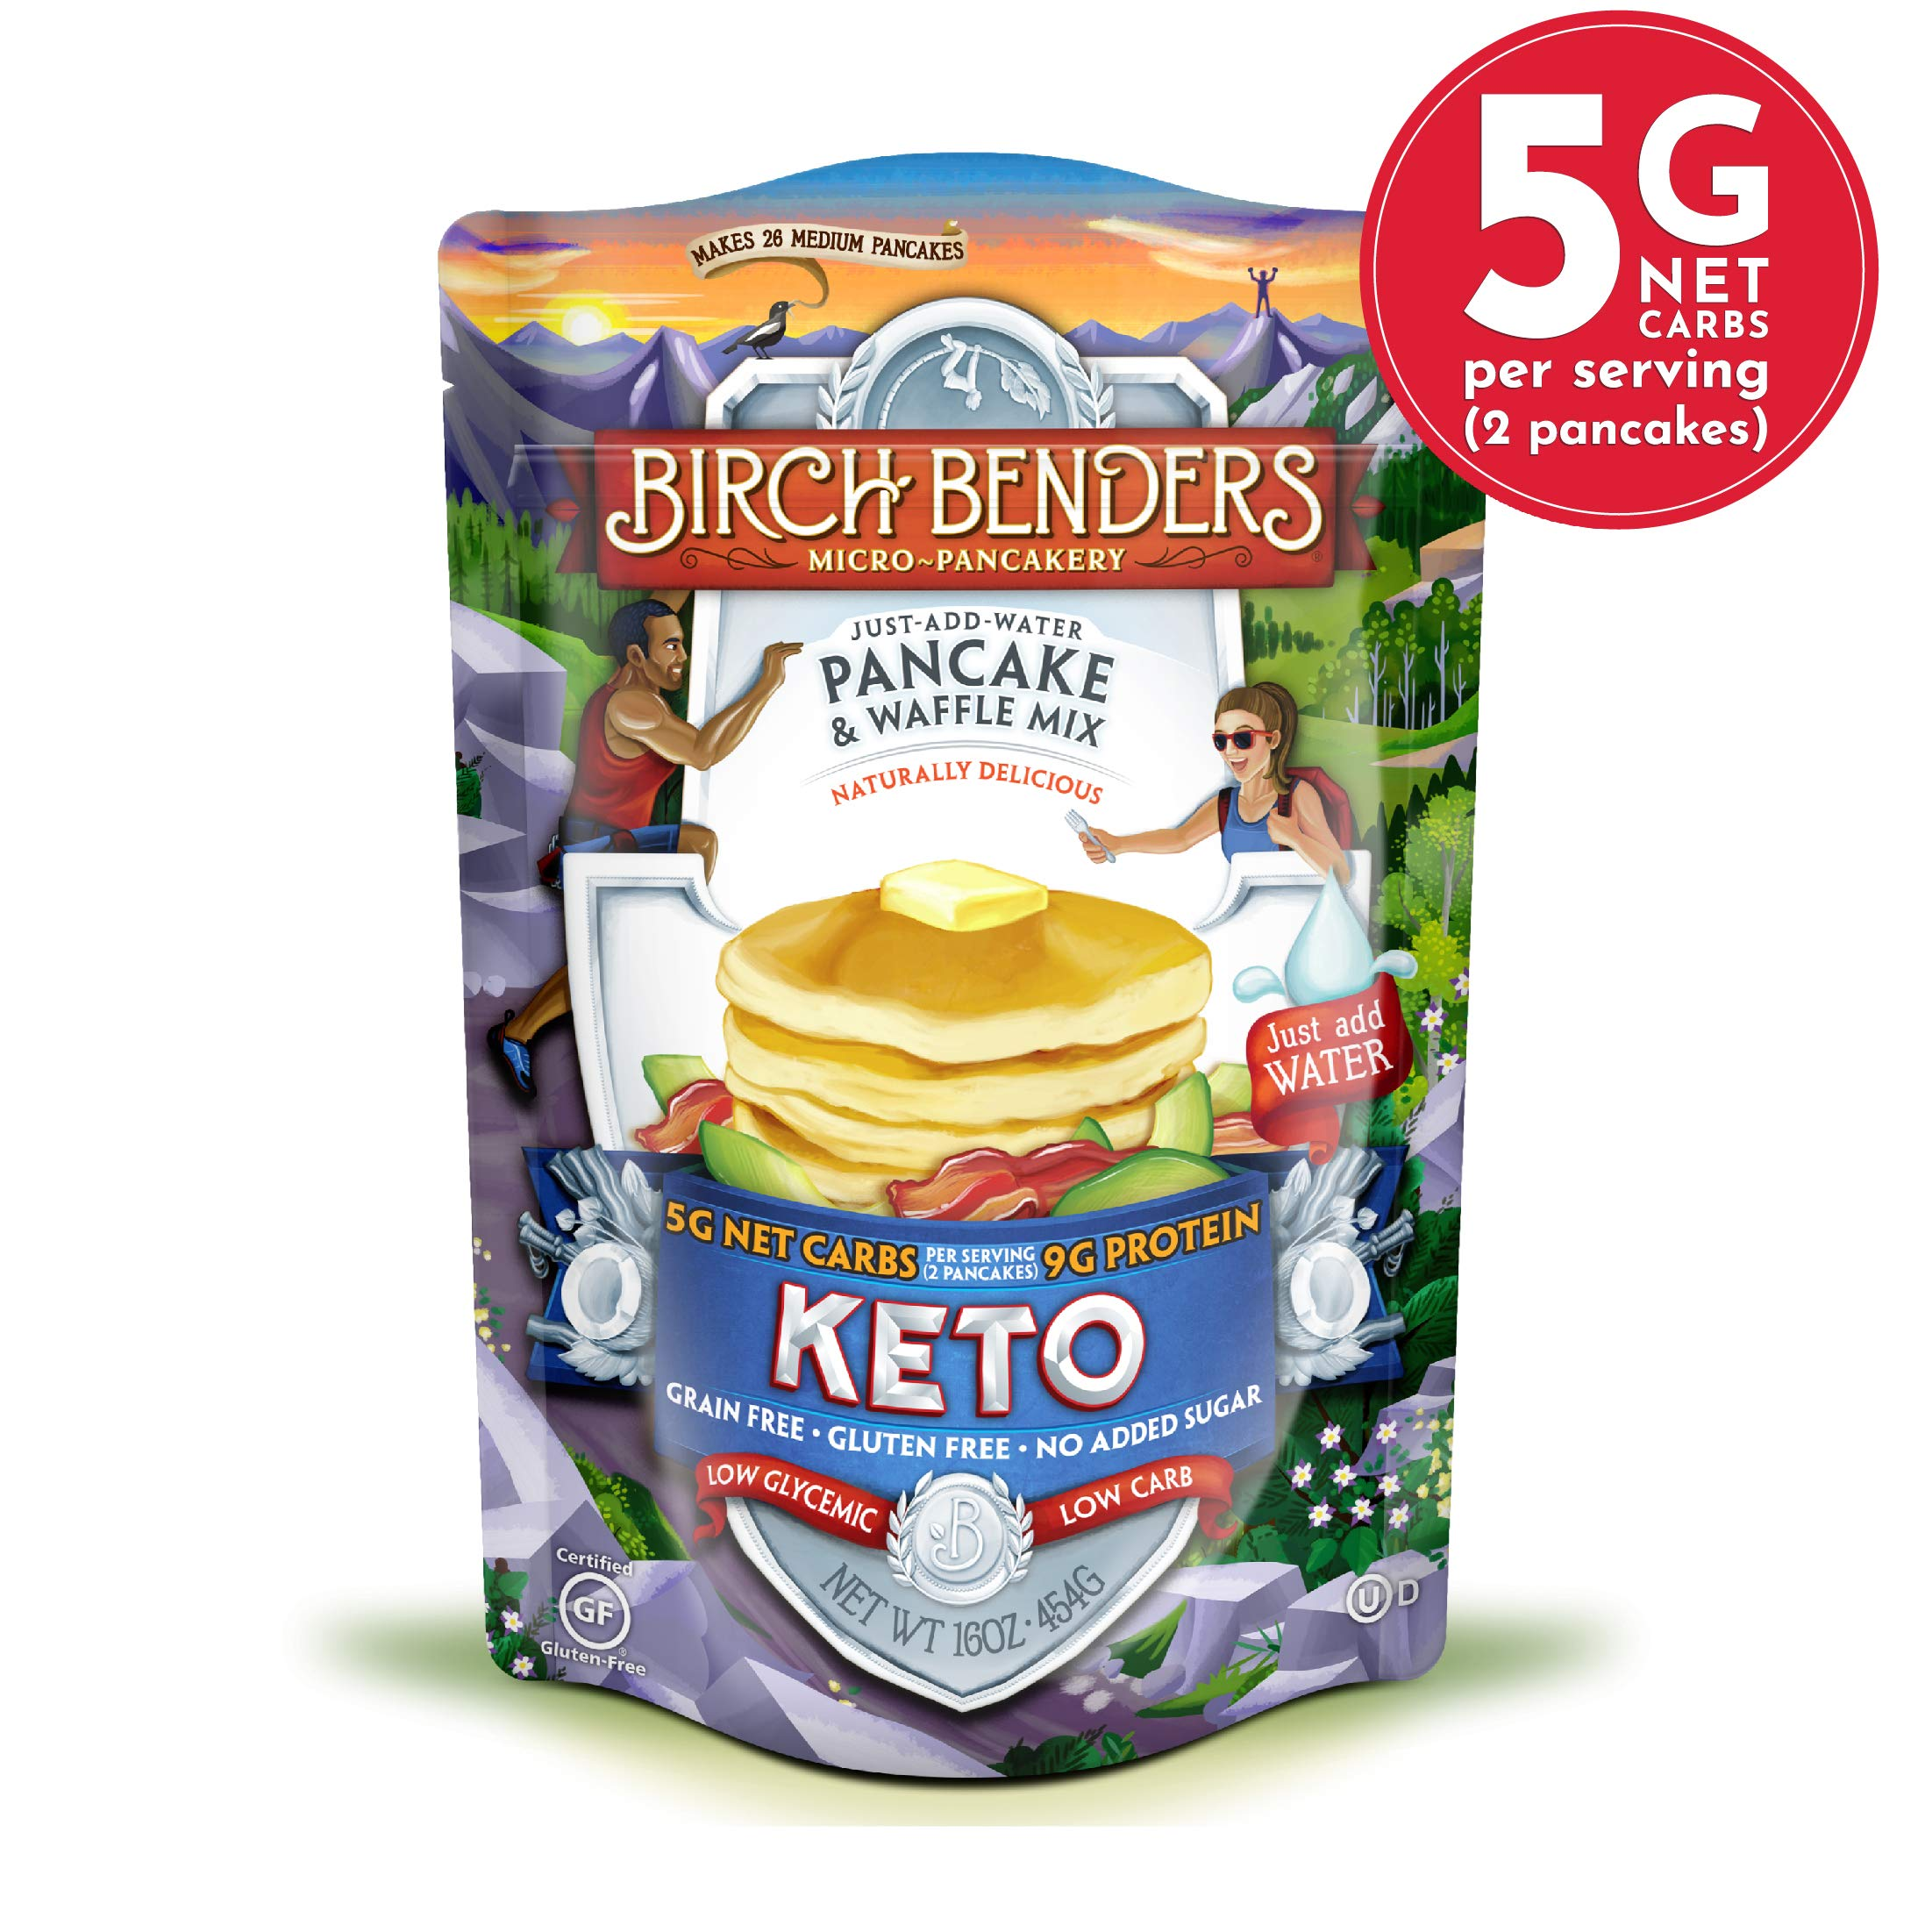 Keto Pancake & Waffle Mix by Birch Benders, Low-Carb, High Protein, Grain-free, Gluten-free, Low Glycemic, Keto-Friendly, Made with Almond, Coconut & Cassava Flour, 16 Ounce (Pack of 1) by Birch Benders